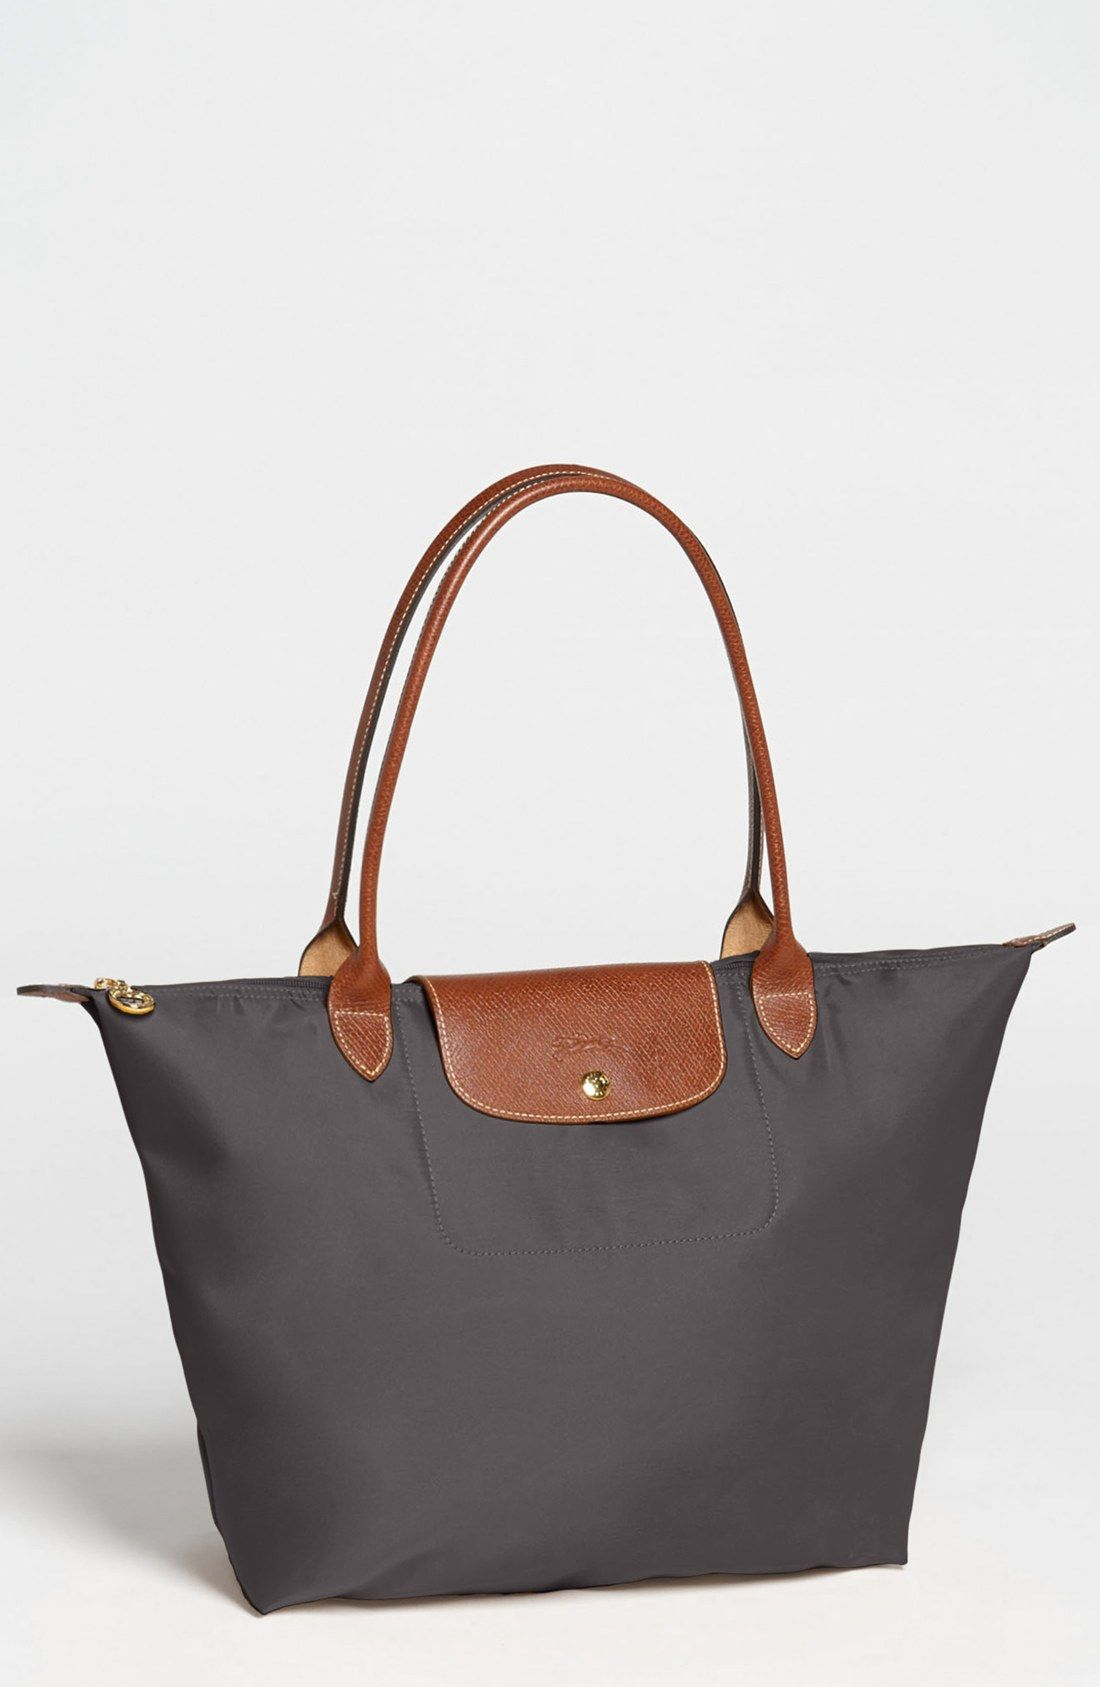 Longchamp  Large Le Pliage  Tote --in gunmetal or whatever brown color they  have. My current one is pretty dirty beat up  tattered. c9034e5aa0a40